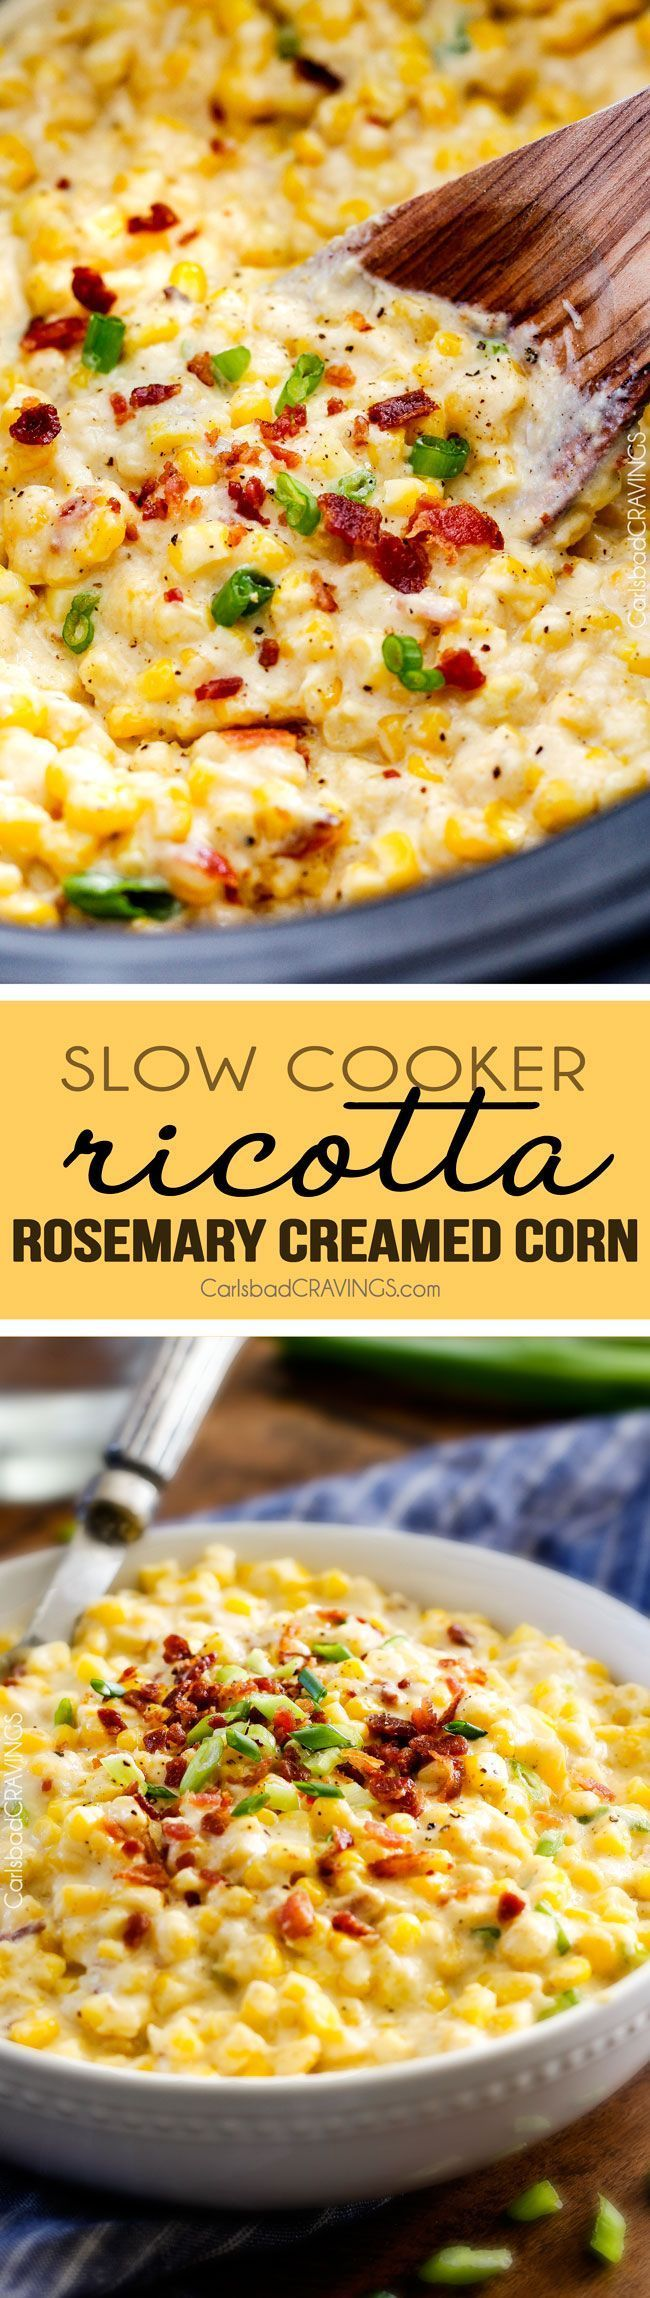 Slow Cooker Creamed Corn with Ricotta and Bacon - this has to be the BEST CREAMED CORN I've eaten in my entire life! Rich and creamy, seasoned to perfection, SO easy and practically fool proof! Definitely making this every Thanksgiving from now on!  via @carlsbadcraving